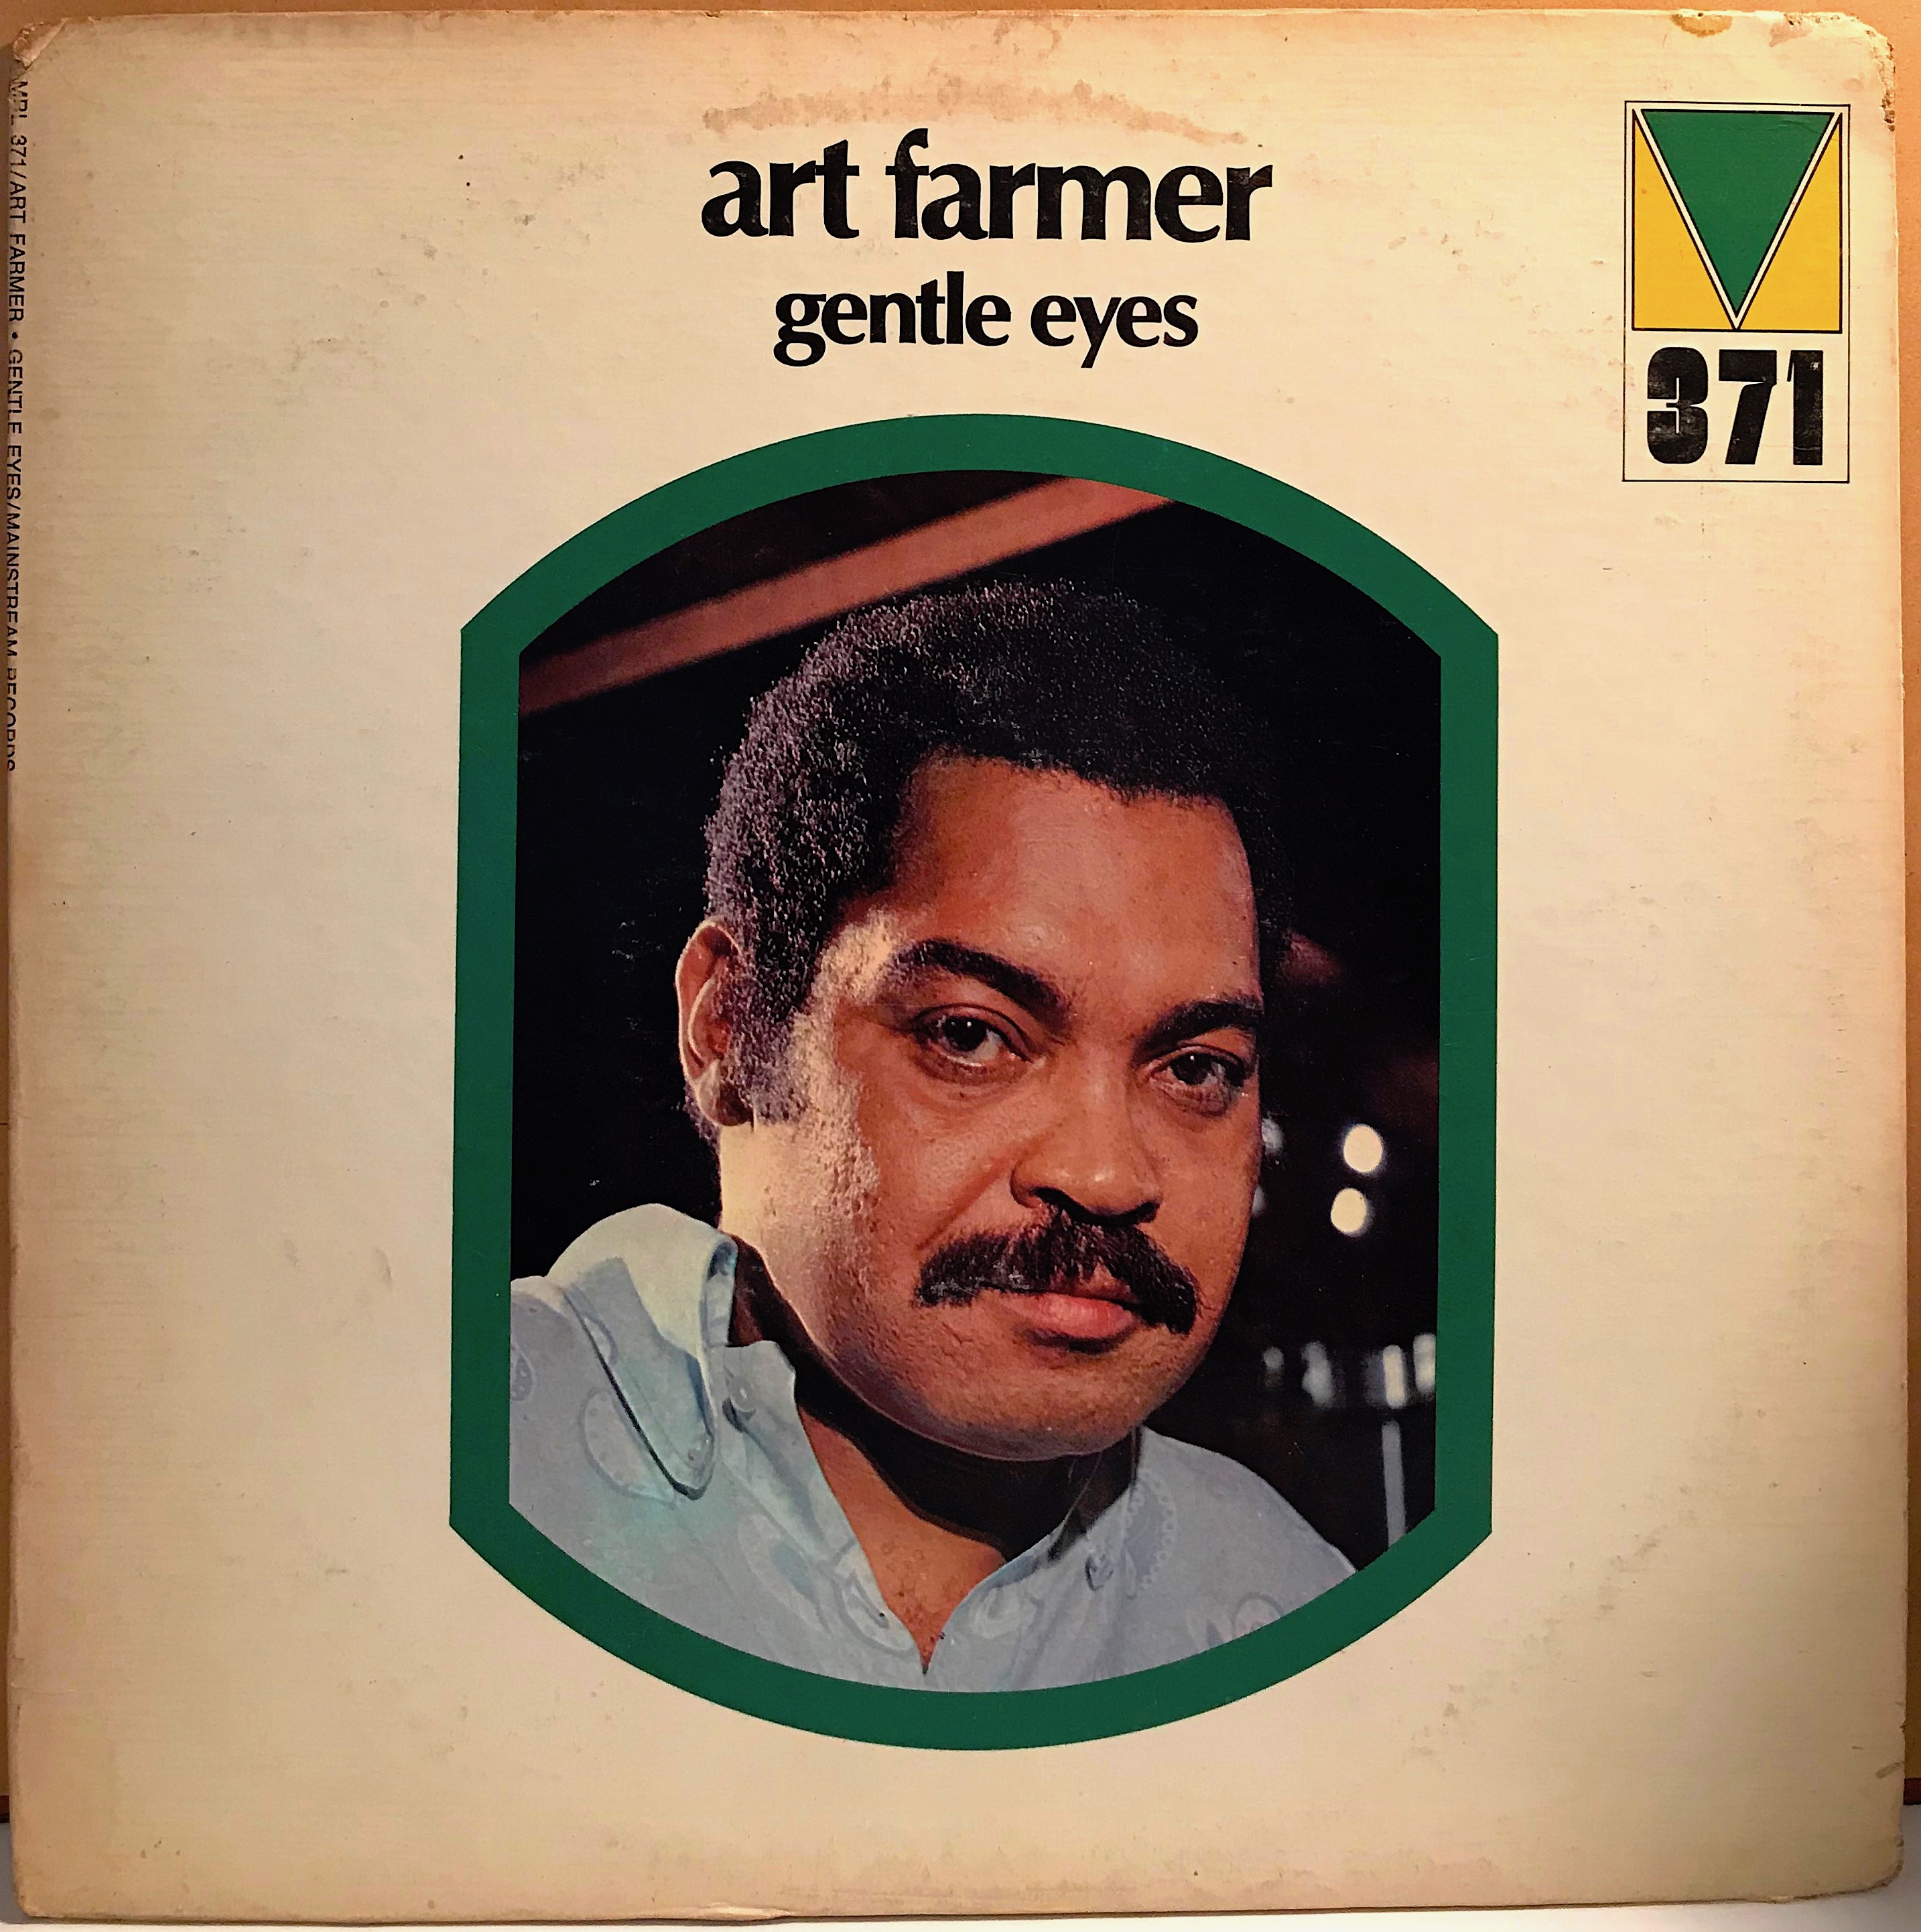 Heres Soul Sides A Funky Jazz Cut From Art Farmers Gentle Eyes 1972 Album On Mainstream This And Many Other Cool Records The LP Cover Lover